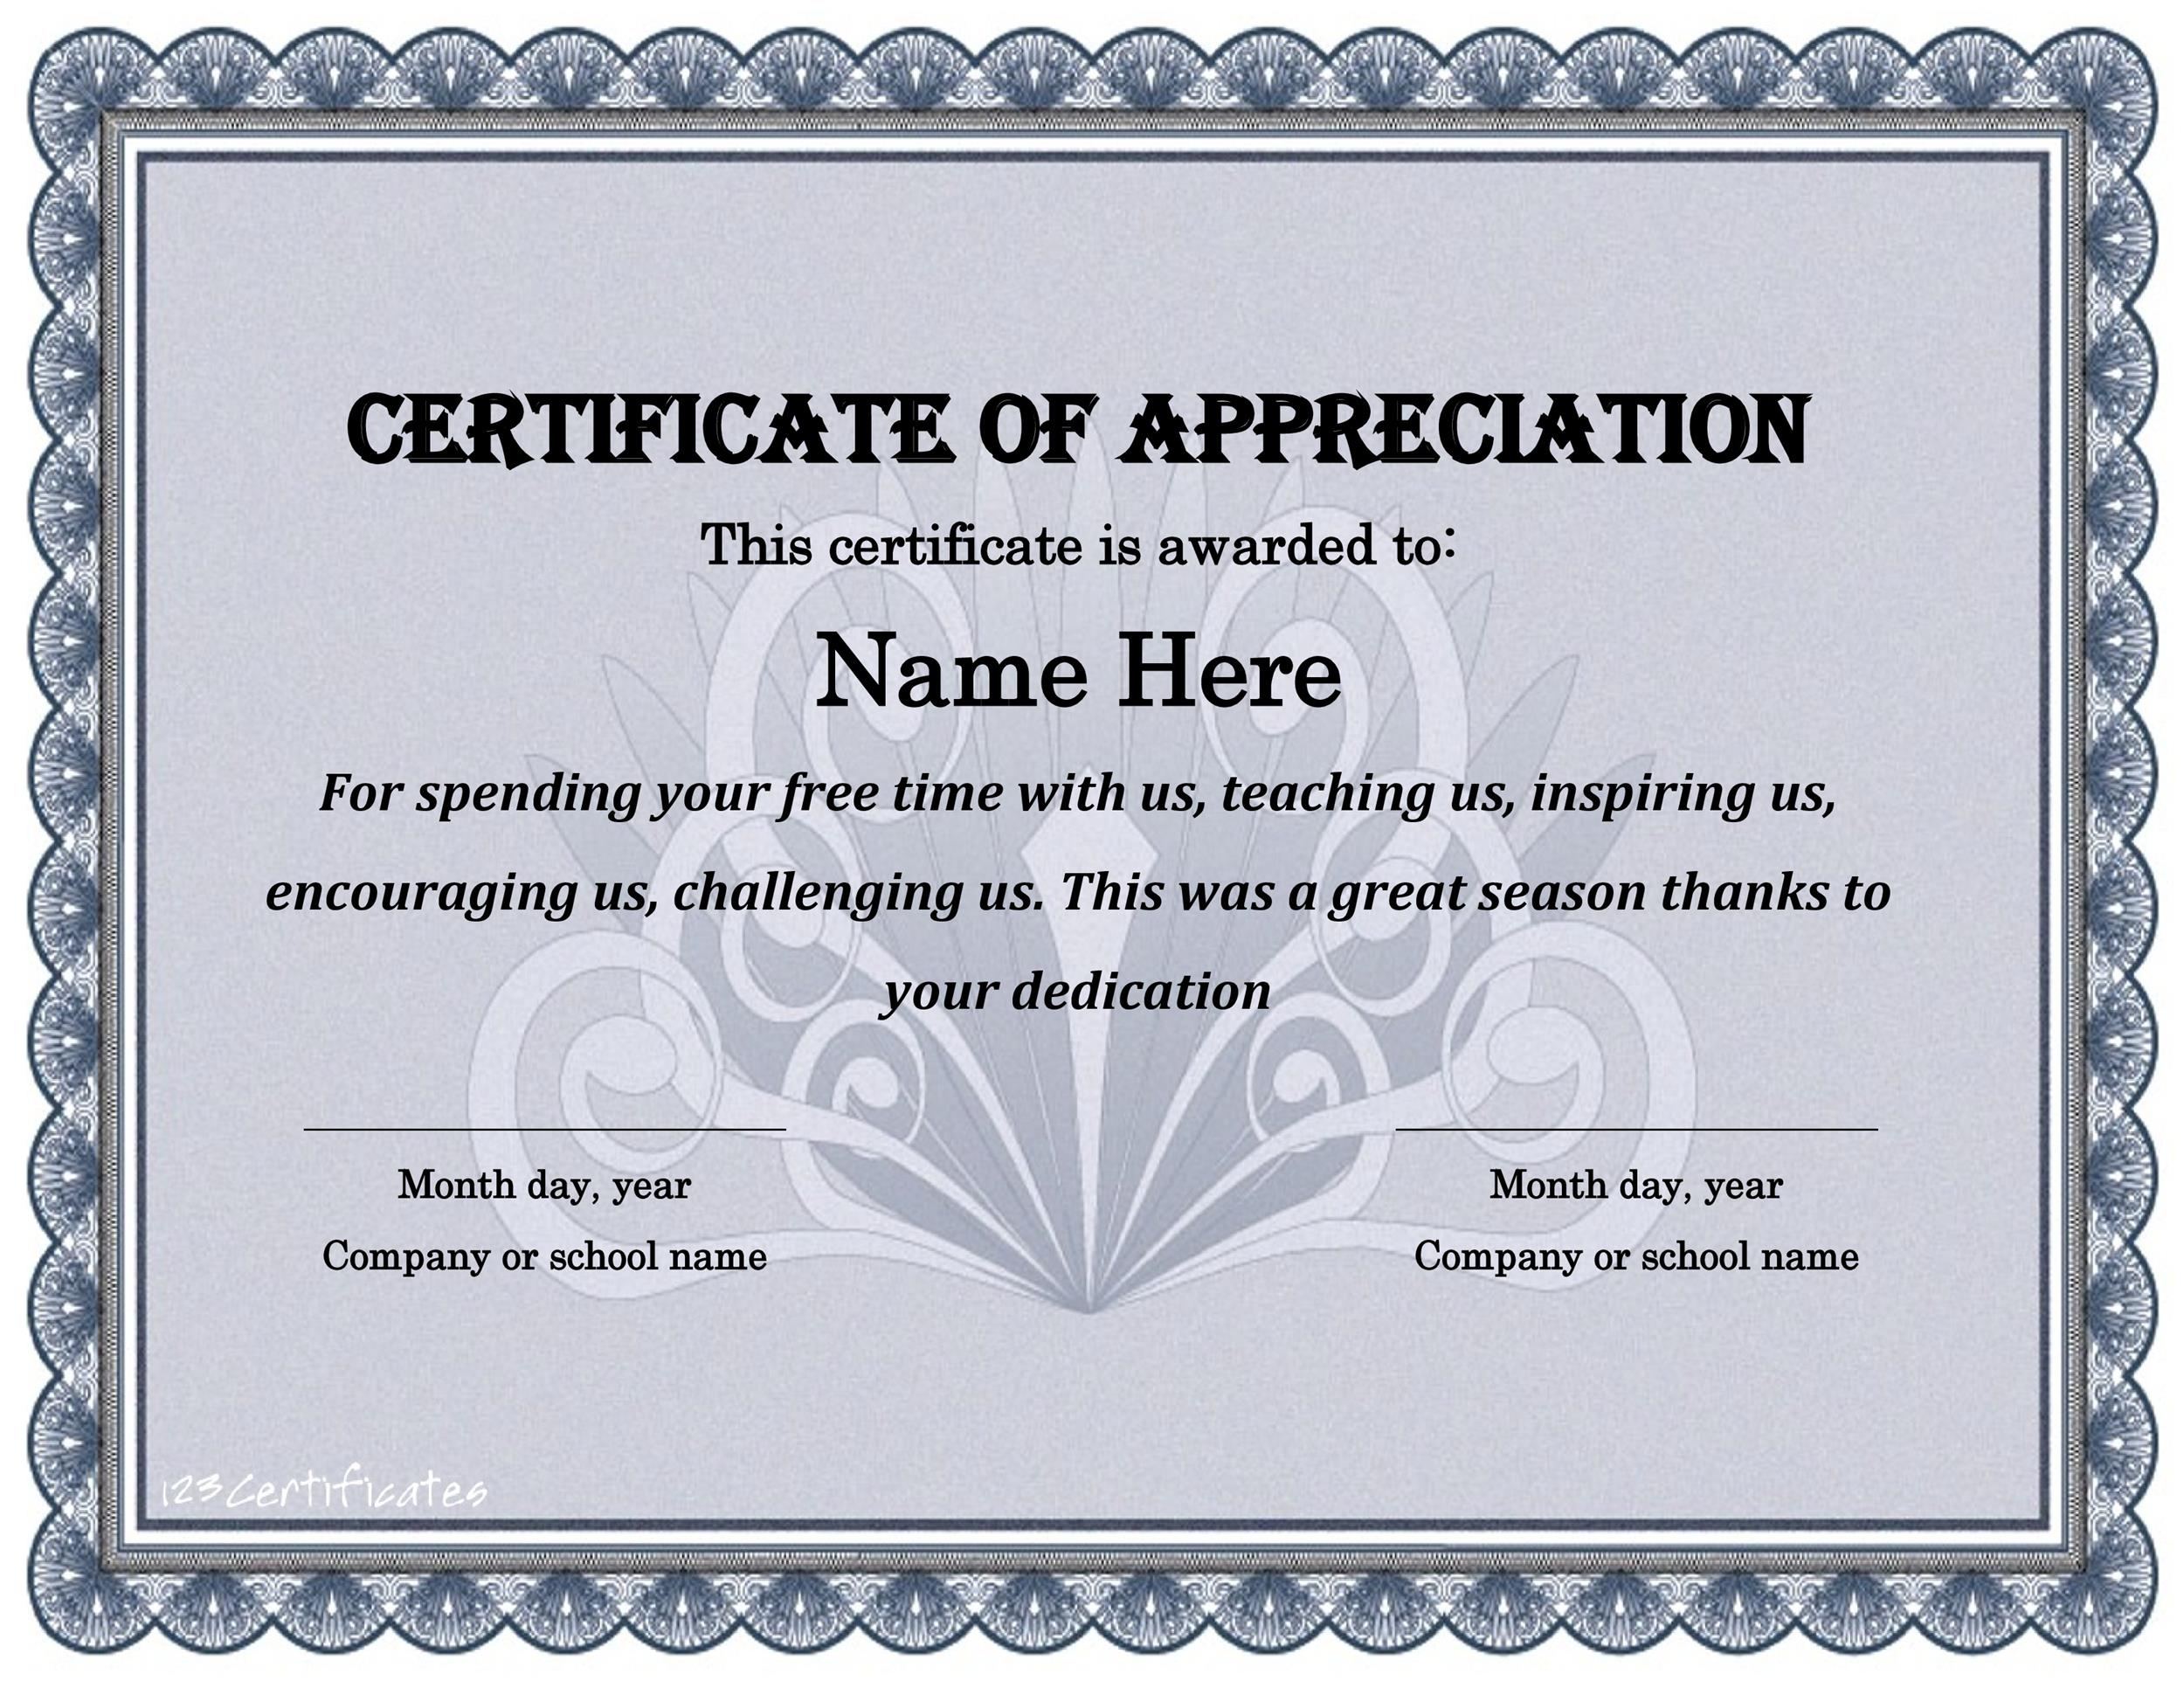 sponsor certificate of appreciation